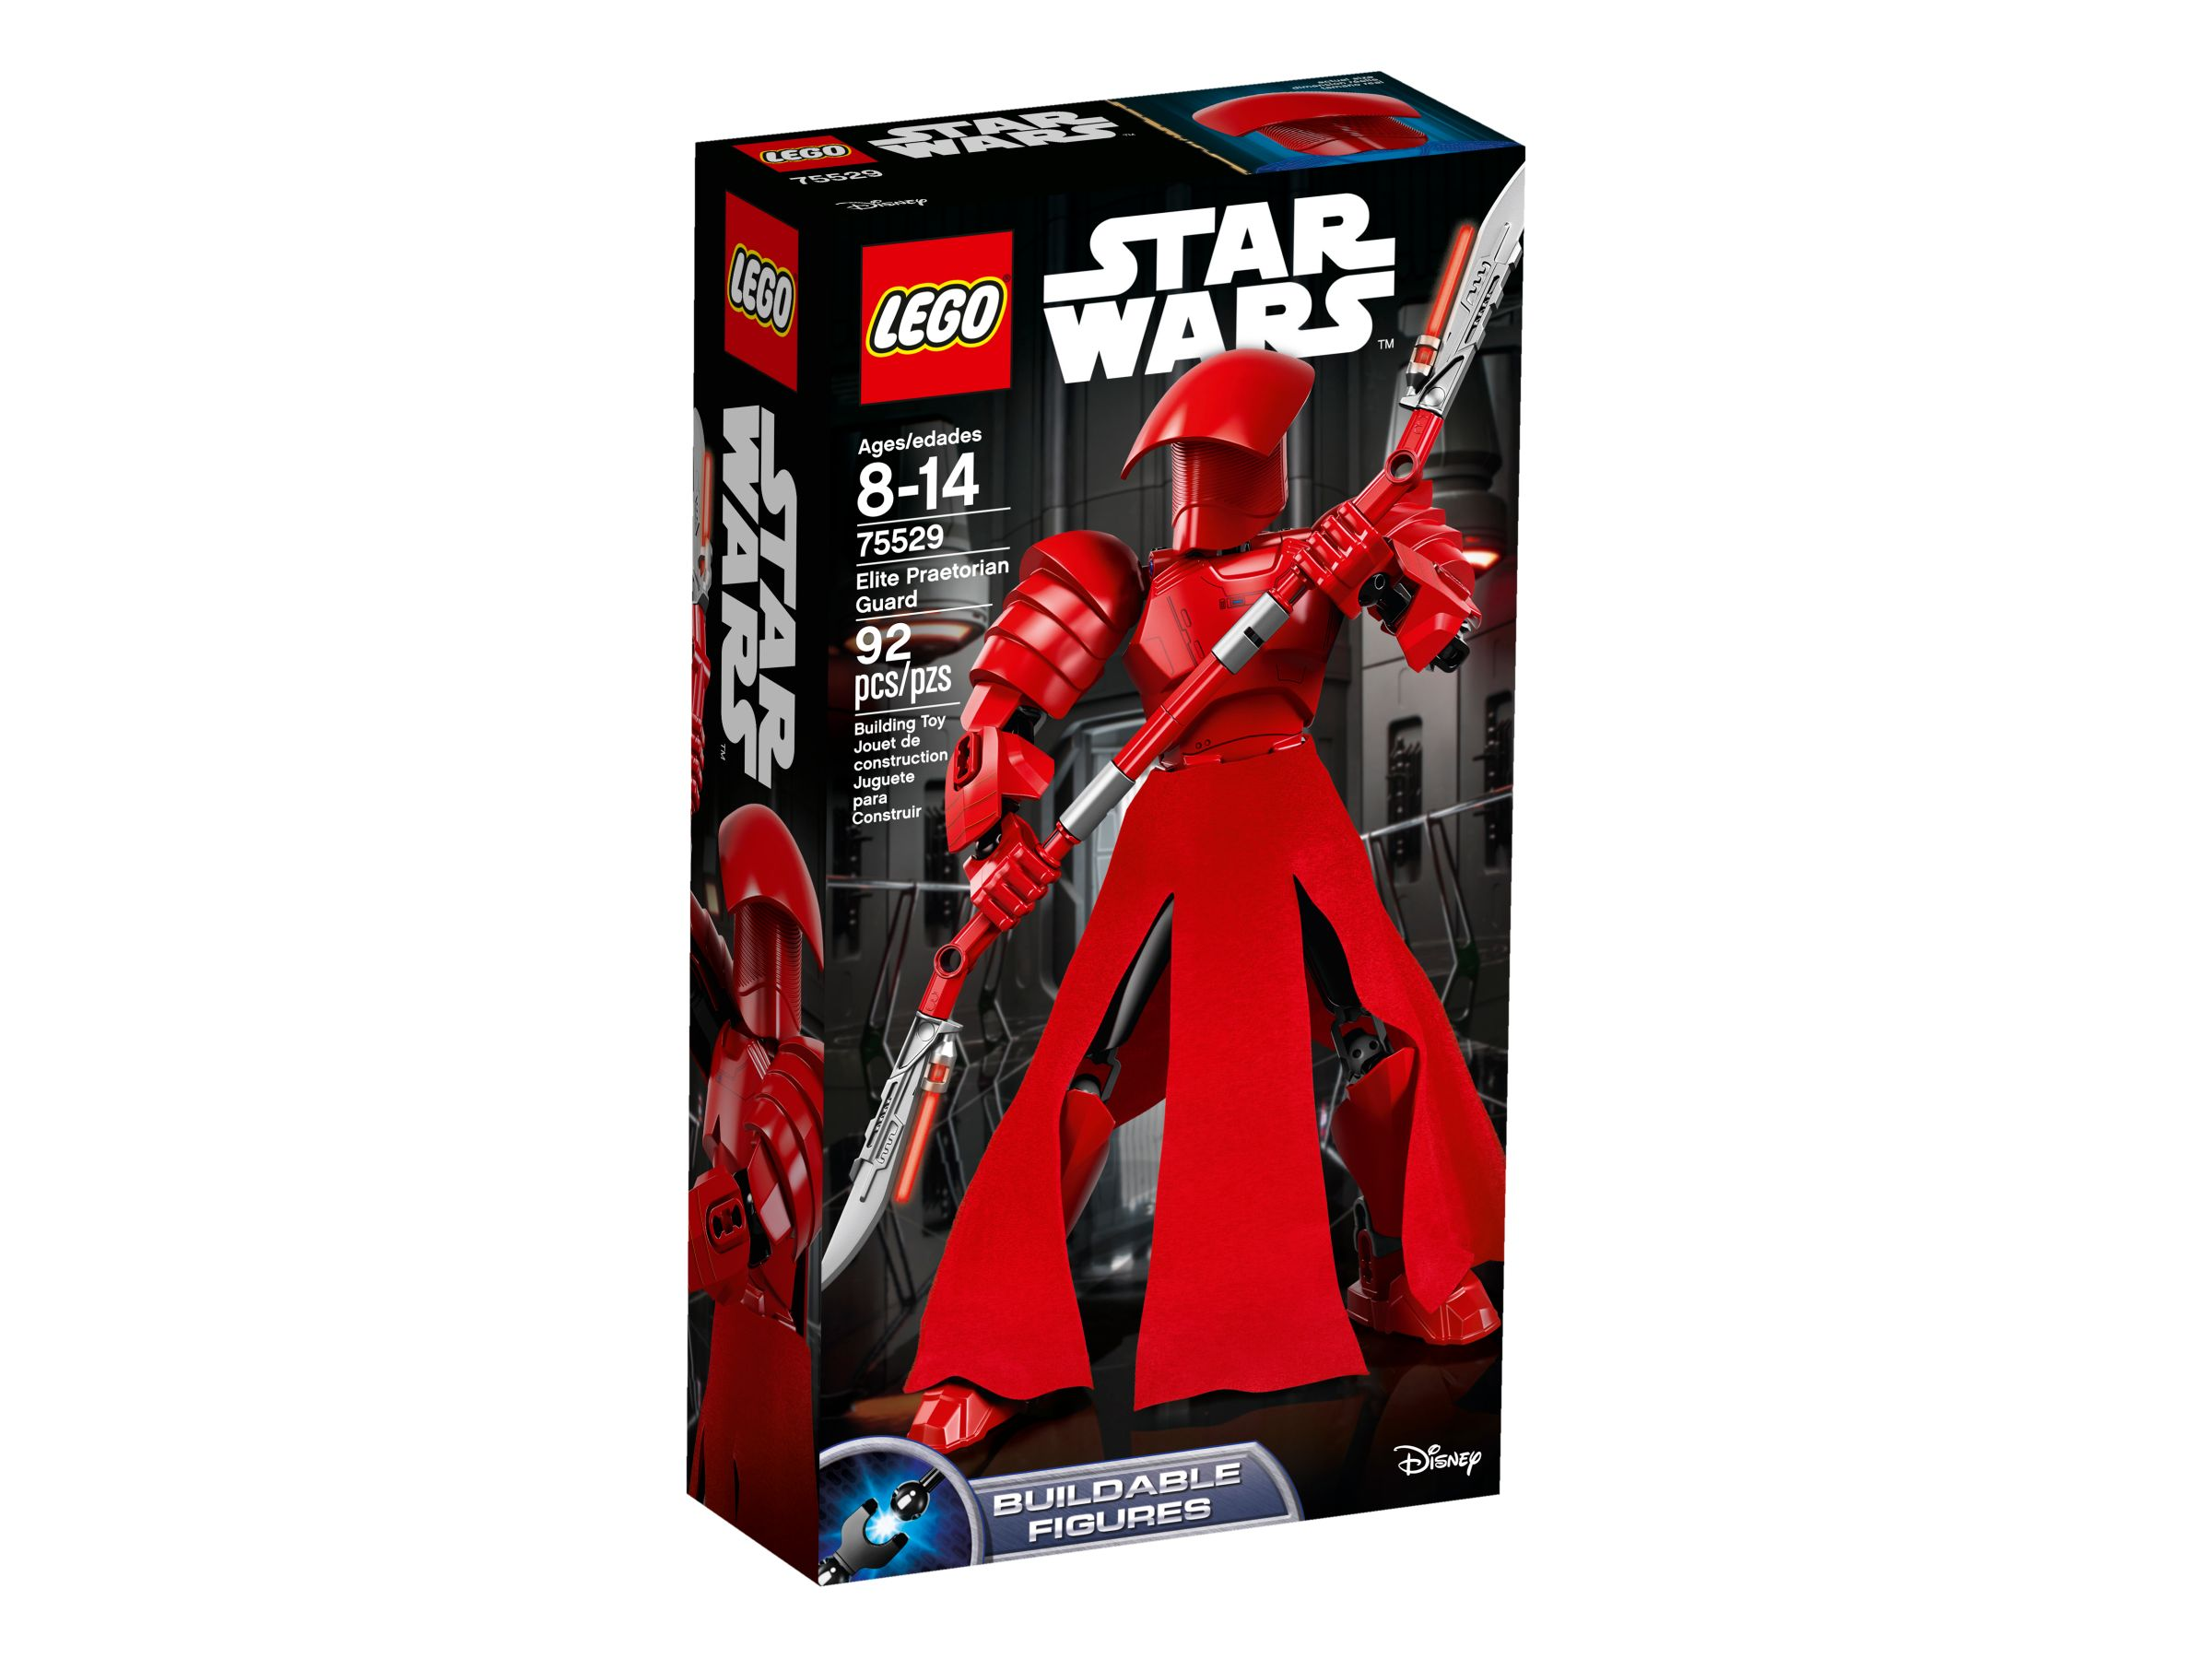 LEGO Star Wars Buildable Figures 75529 Elite Praetorian Guard LEGO_75529_alt1.jpg